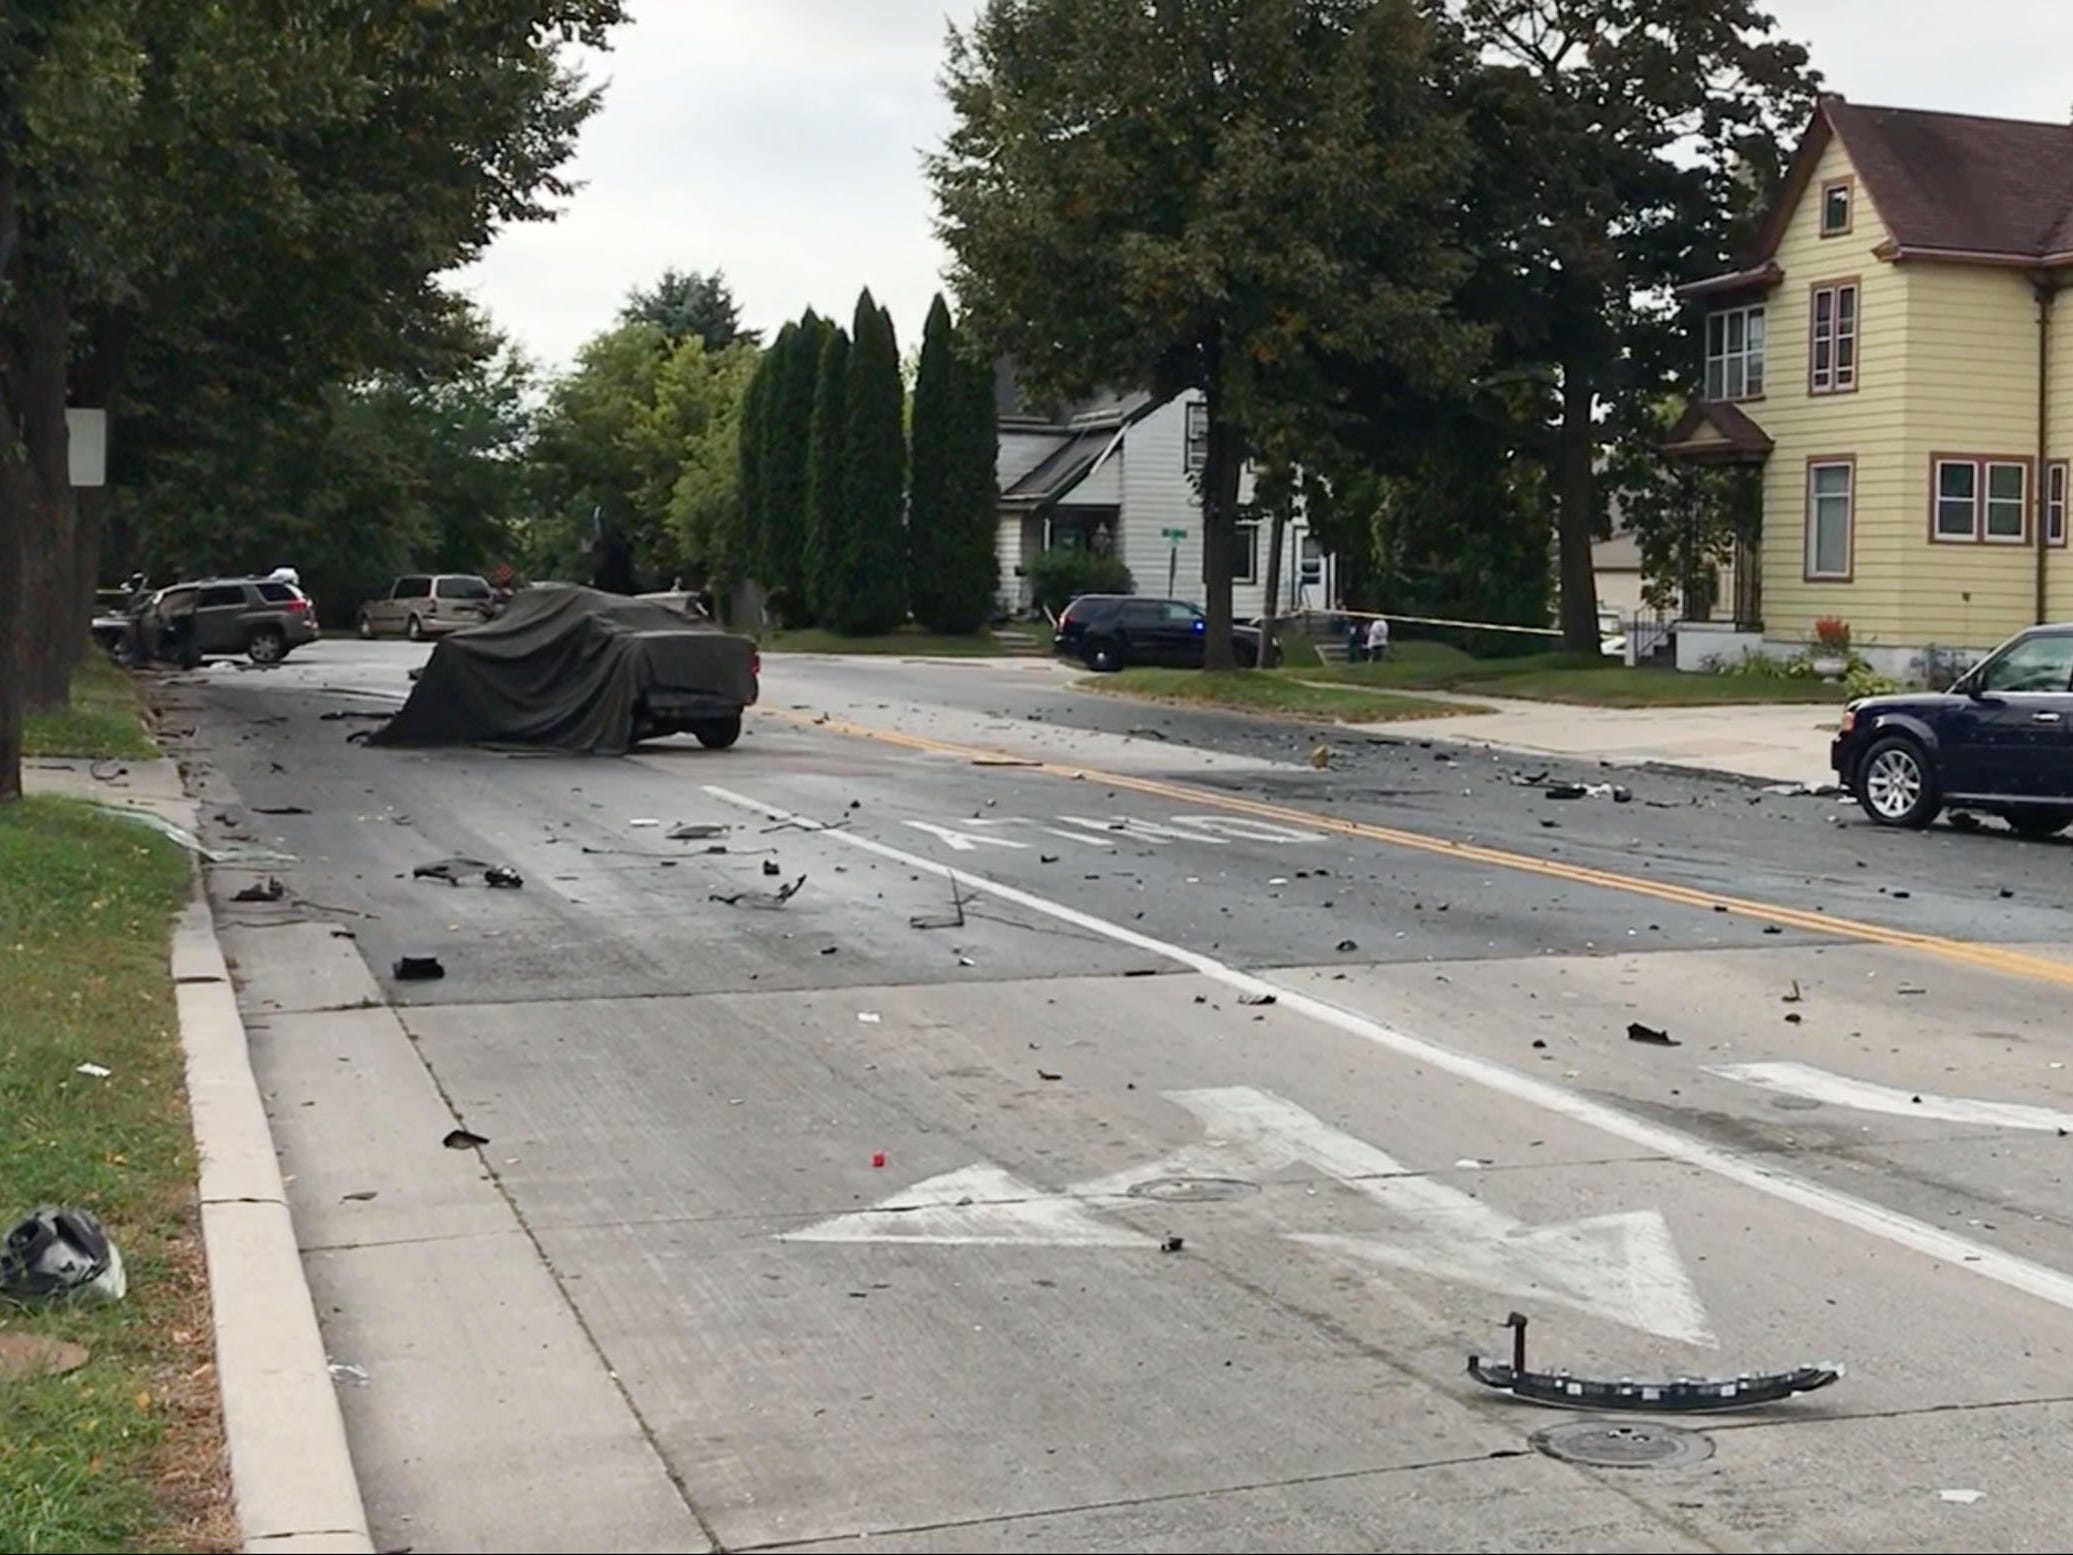 An overall of the scene of a 2-car crash on Pennsylvania Avenue between 14th and 15th streets, Tuesday, September 18, 2018, in Sheboygan, Wis. A third parked car was also struck. Two people died as a result of the crash.